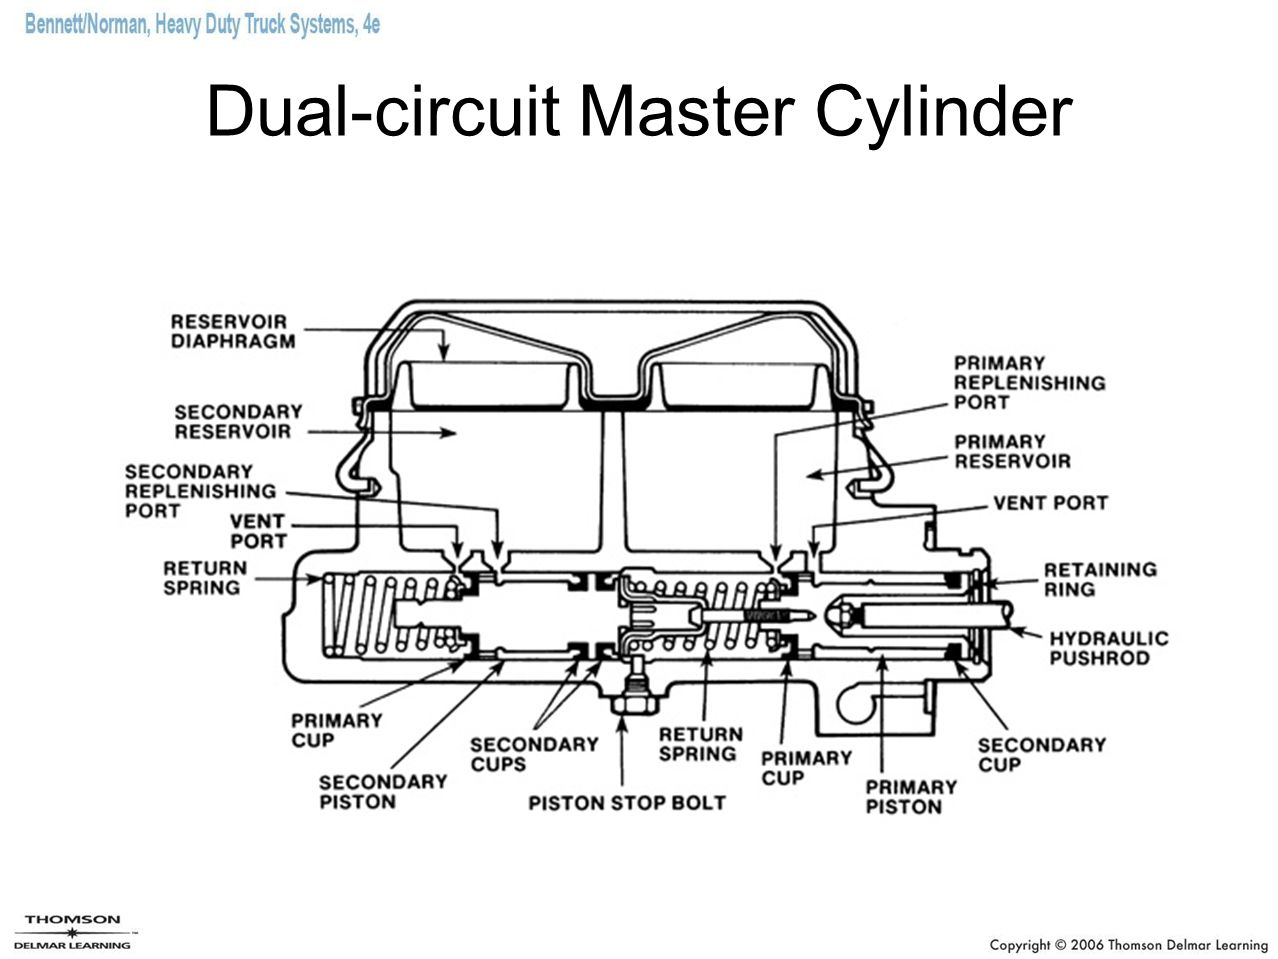 Chevy 216 Engine Diagram Wiring Library Short Block Dual Circuit Master Cylinder Plumbing Enthusiast Truck